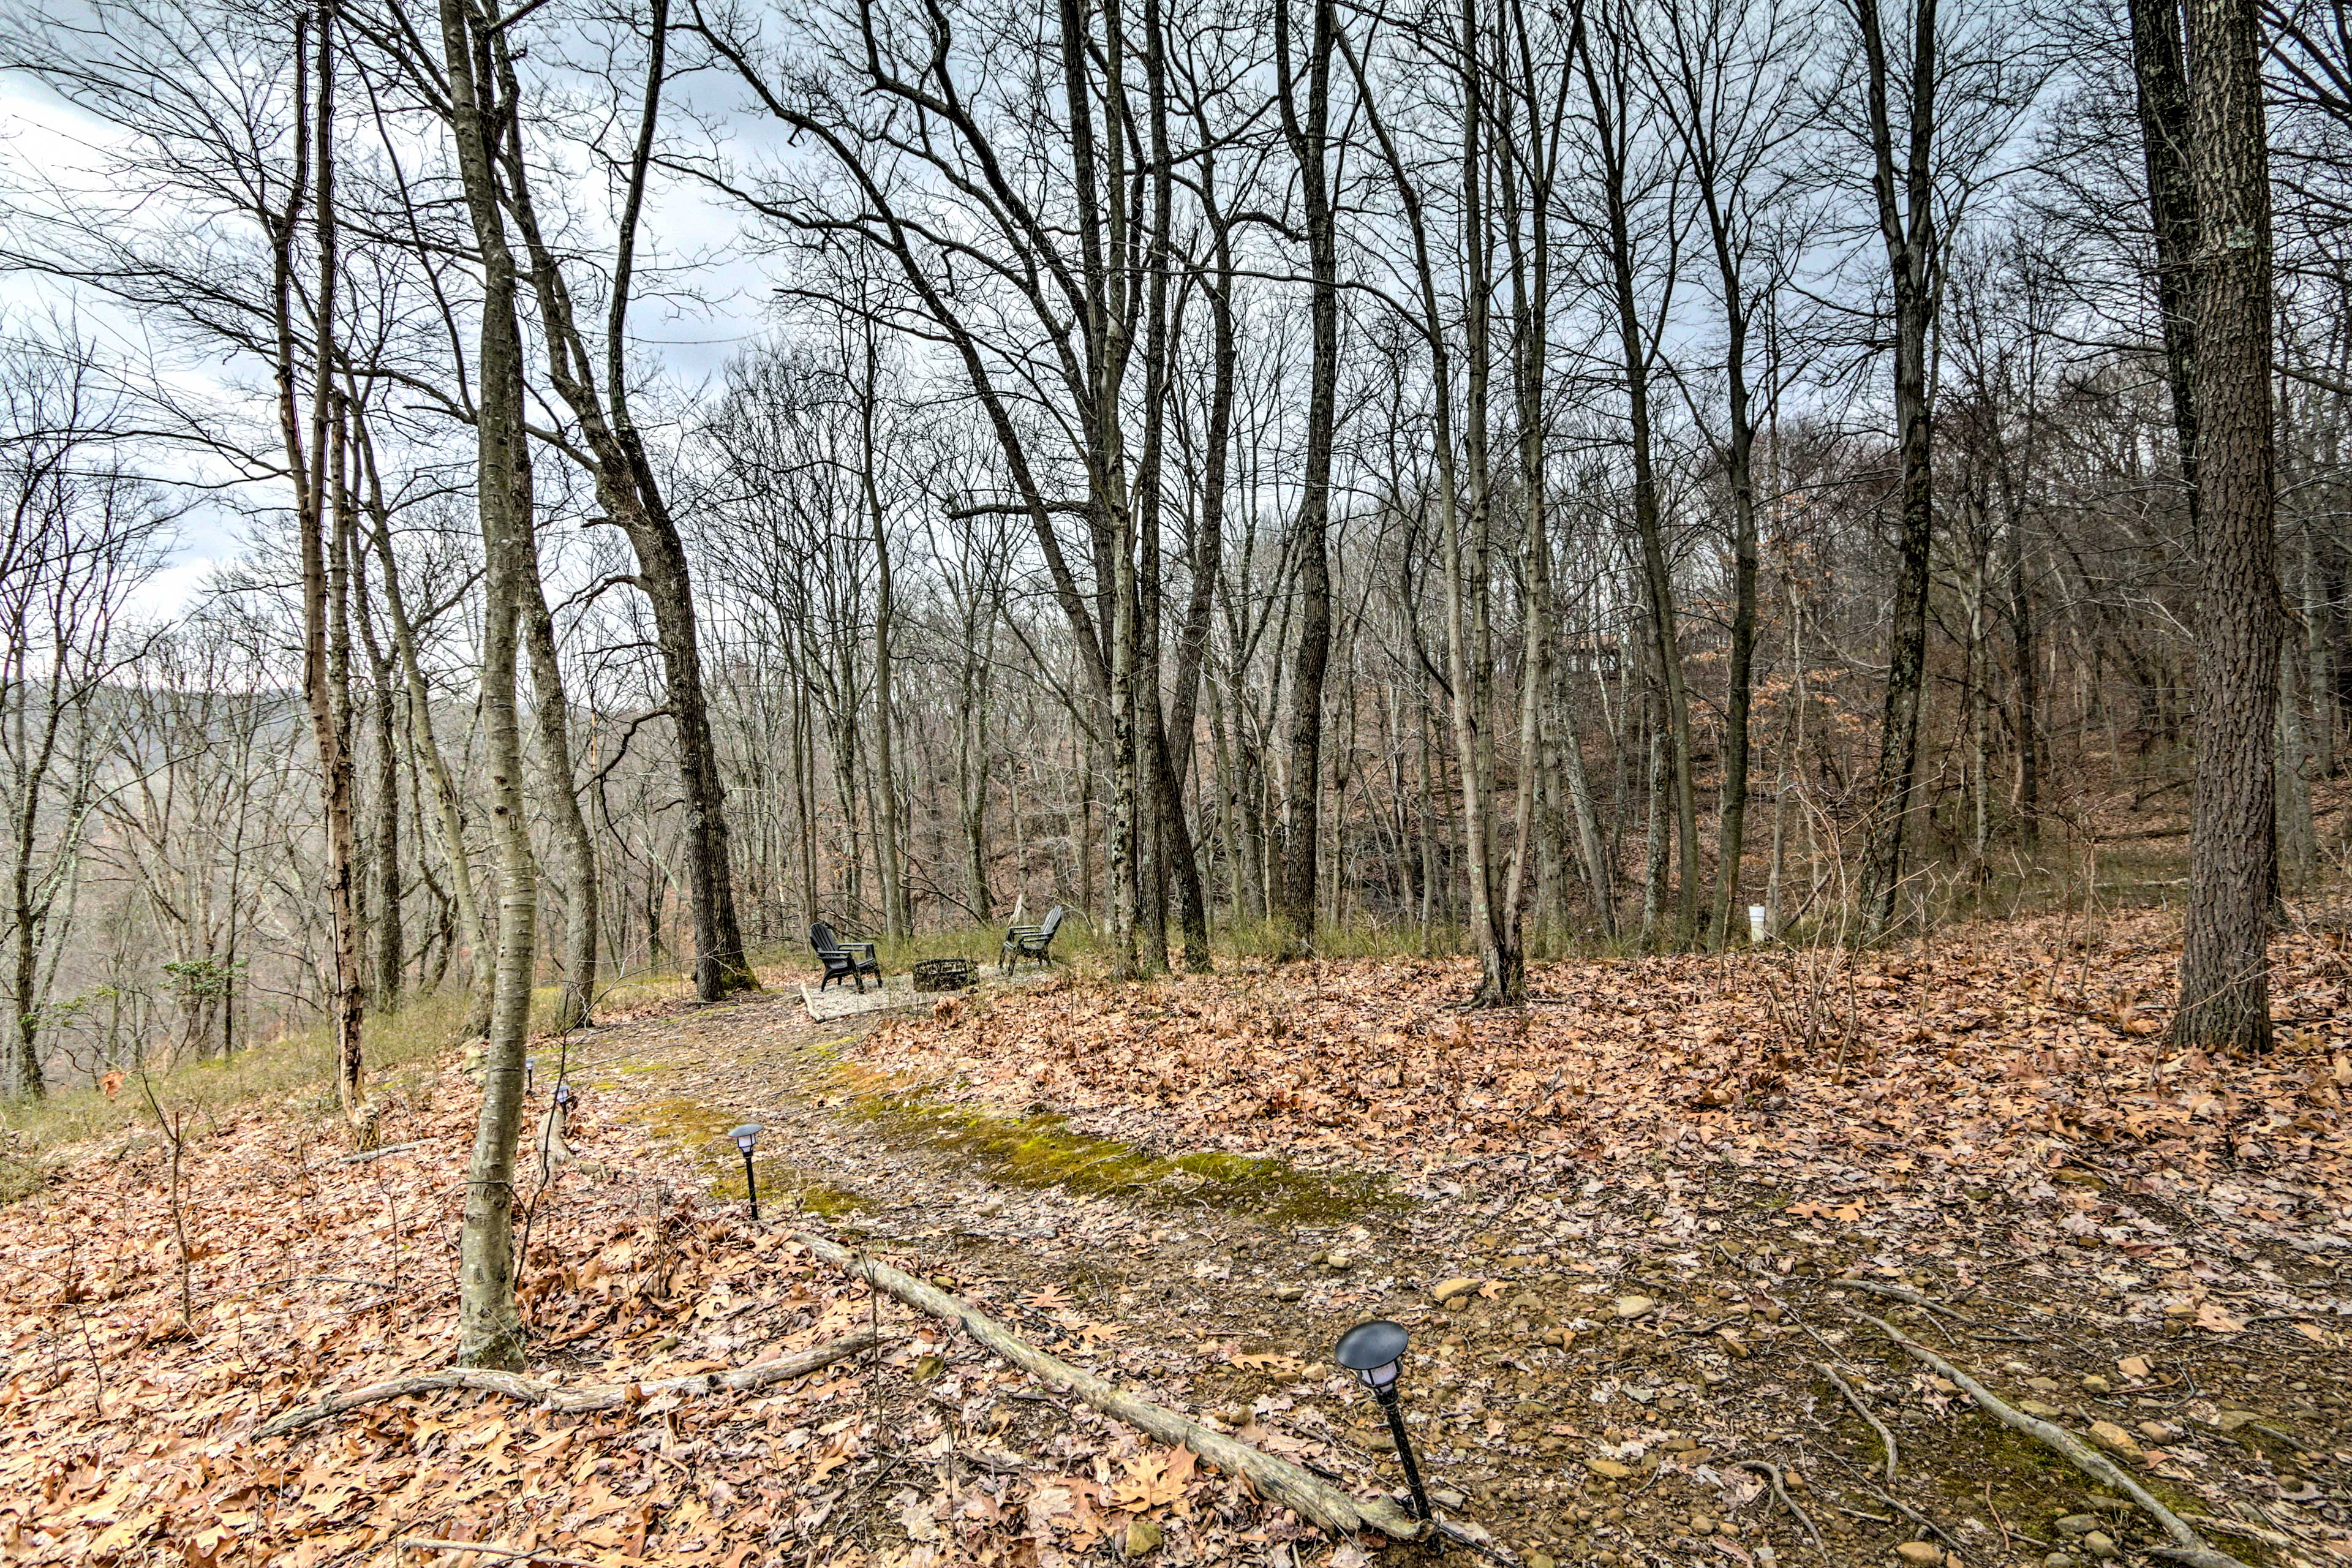 Walk down to the fire pit and take a look into the ravine.